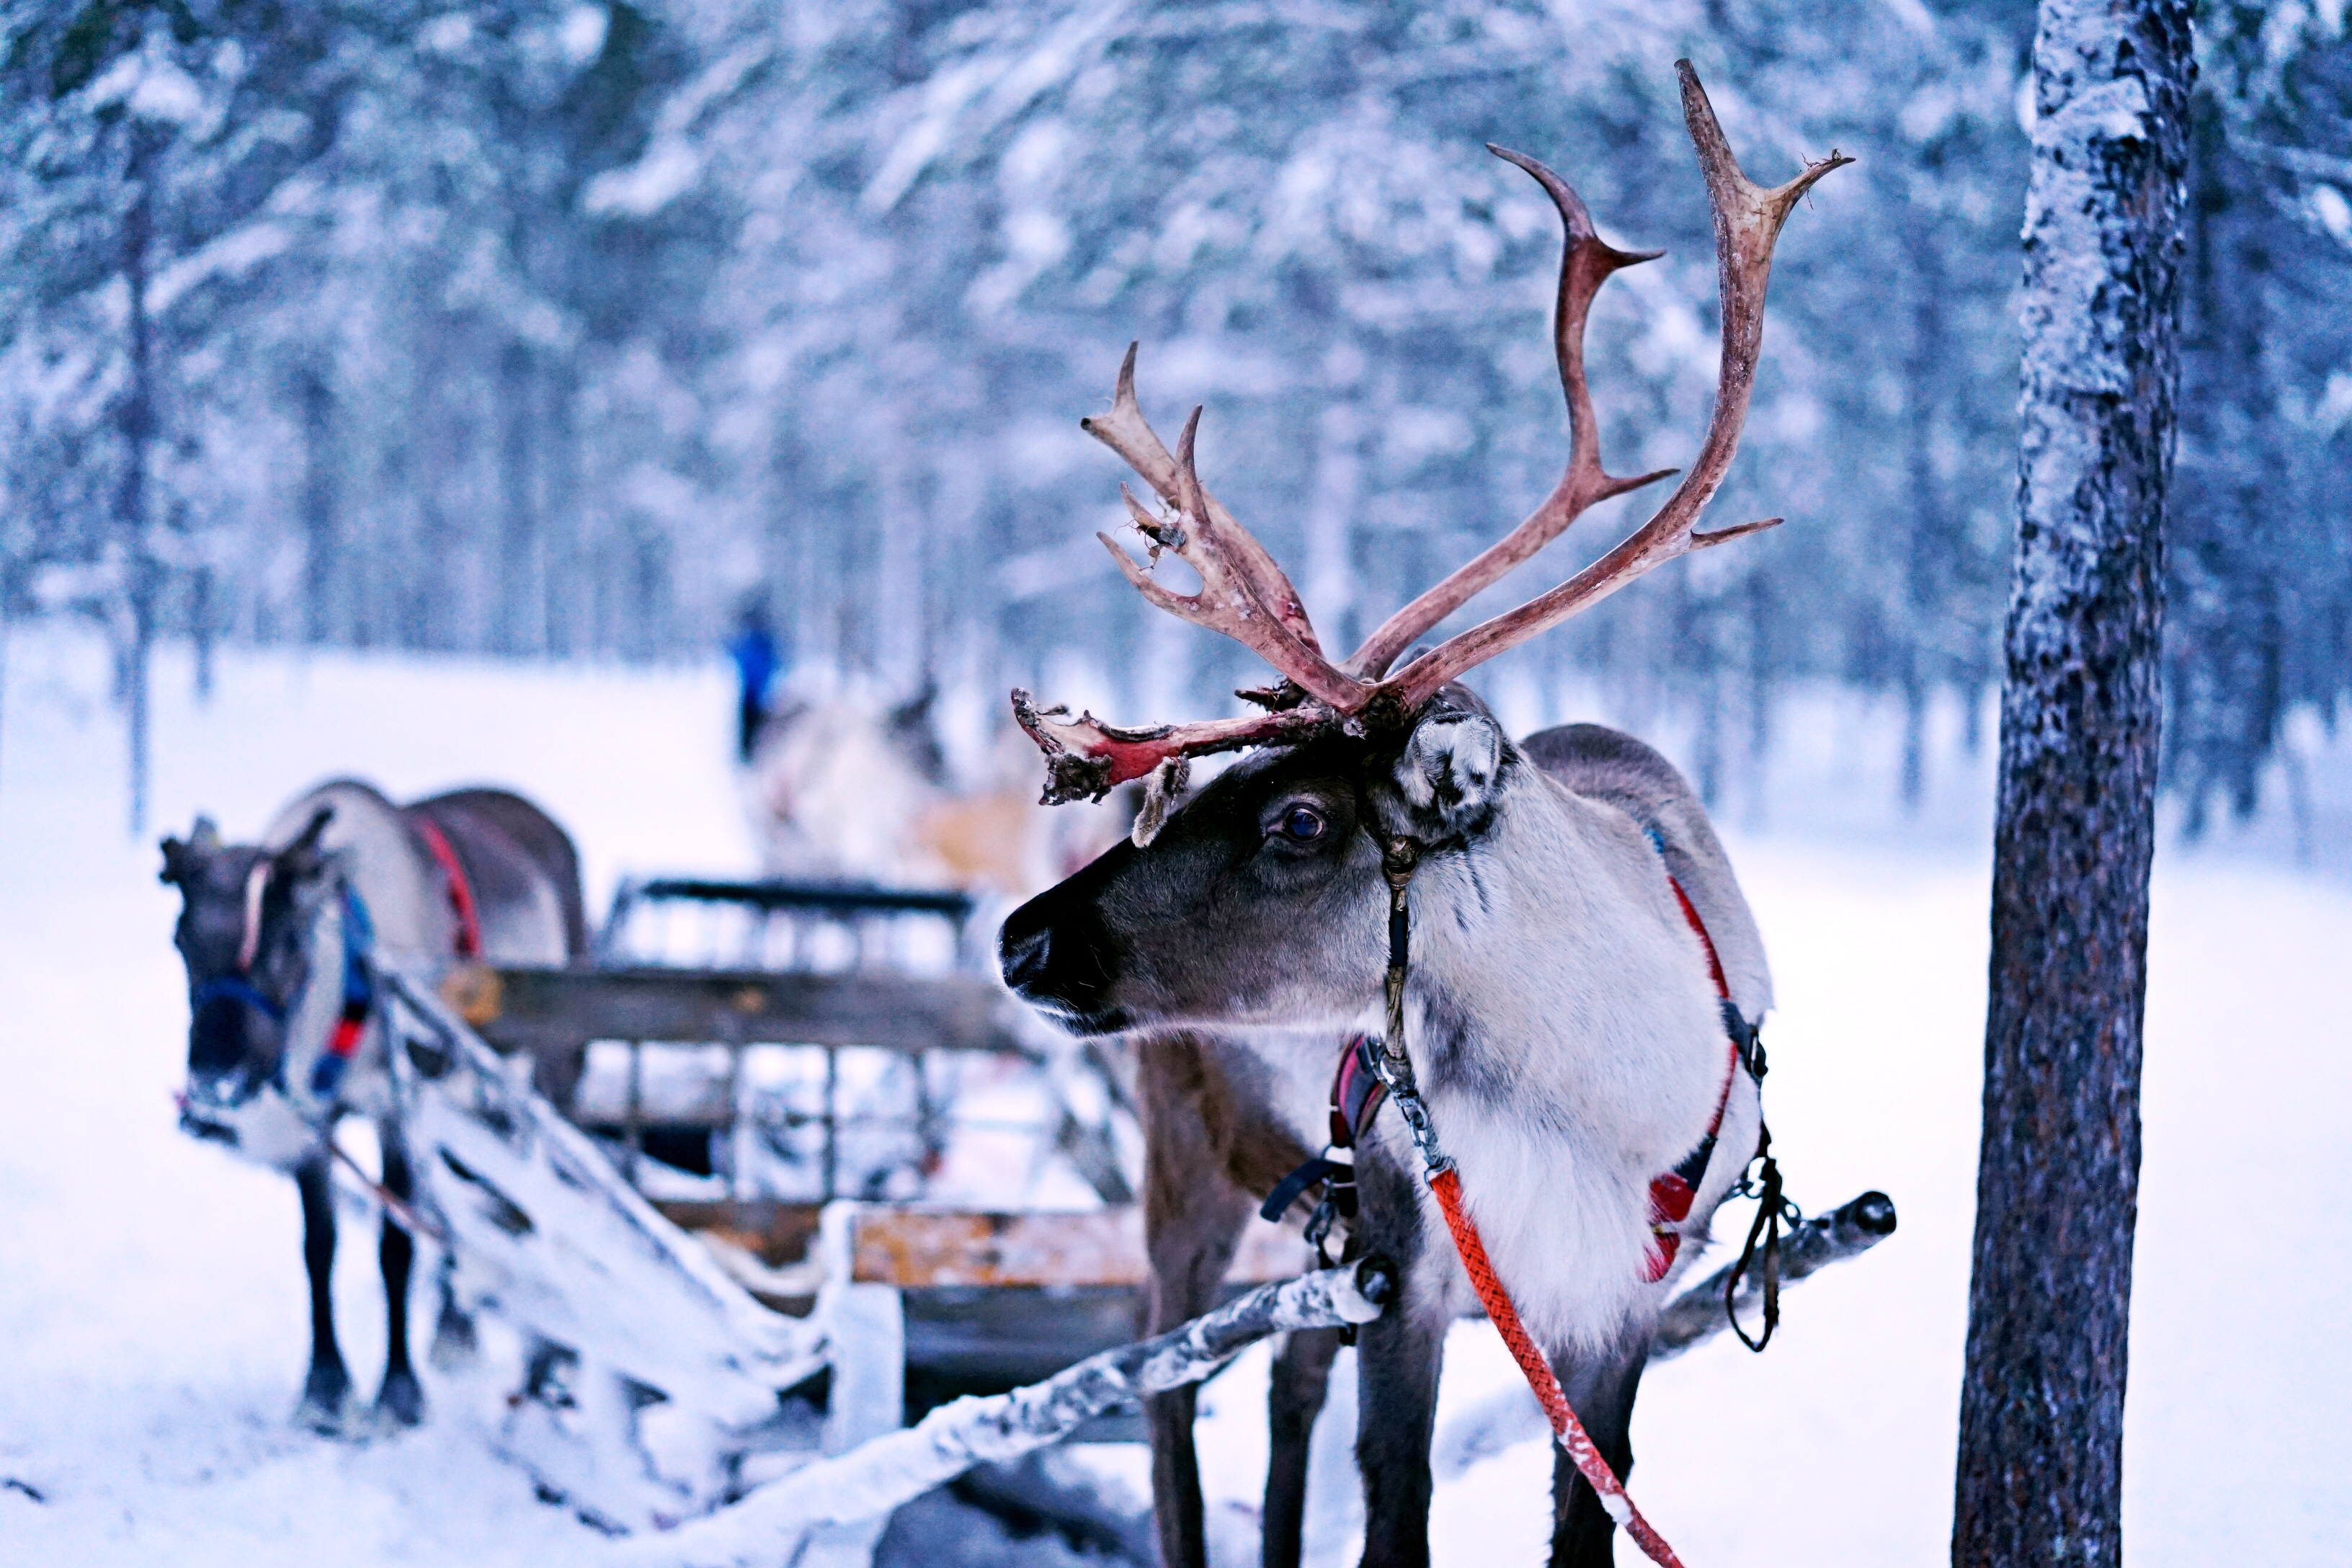 Reindeer and the sledge